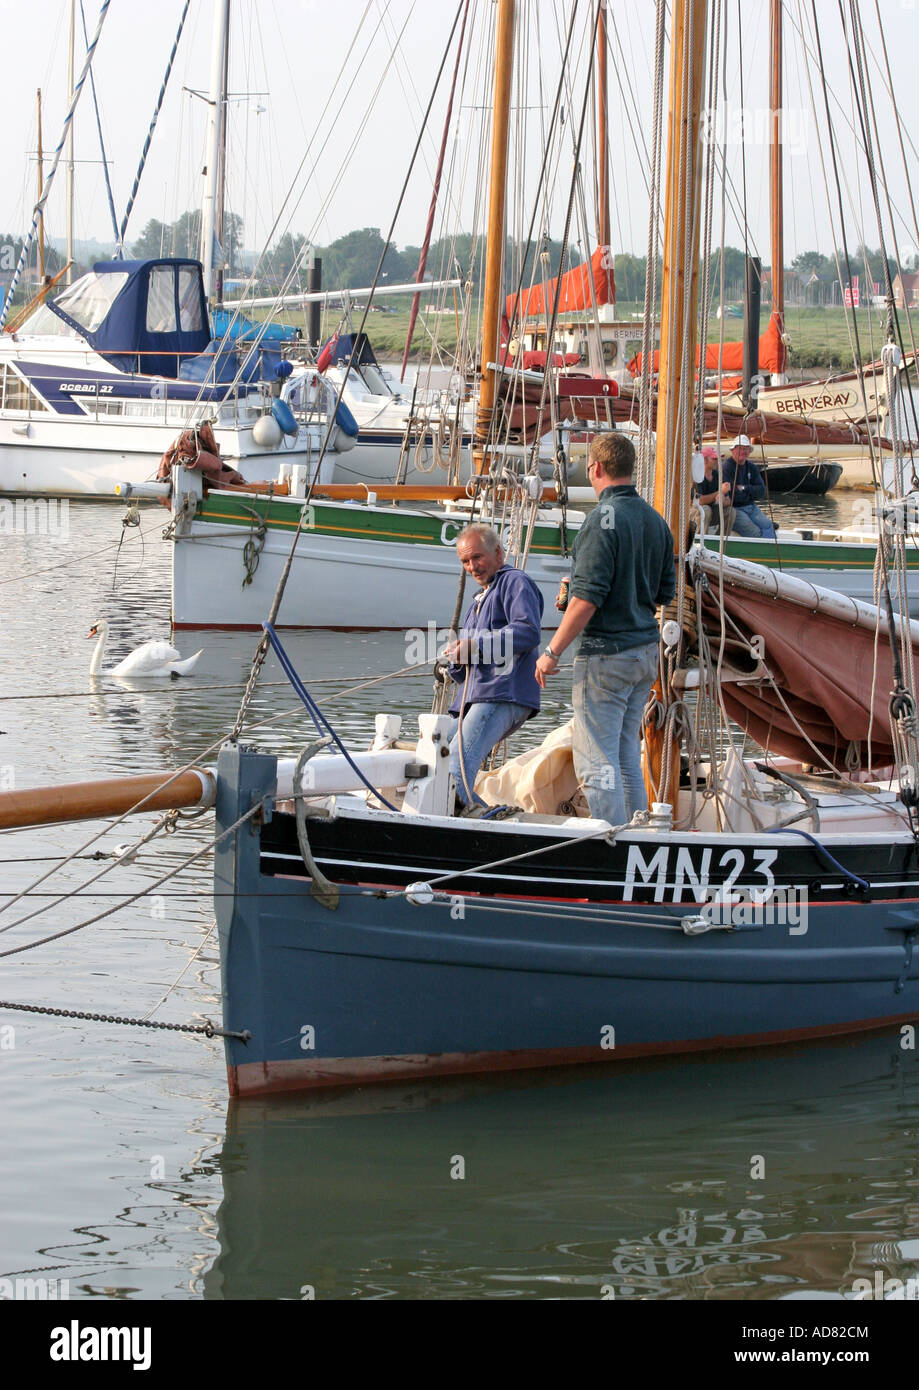 Skipper and crew of the Oyster Smack MN23 - Stock Image